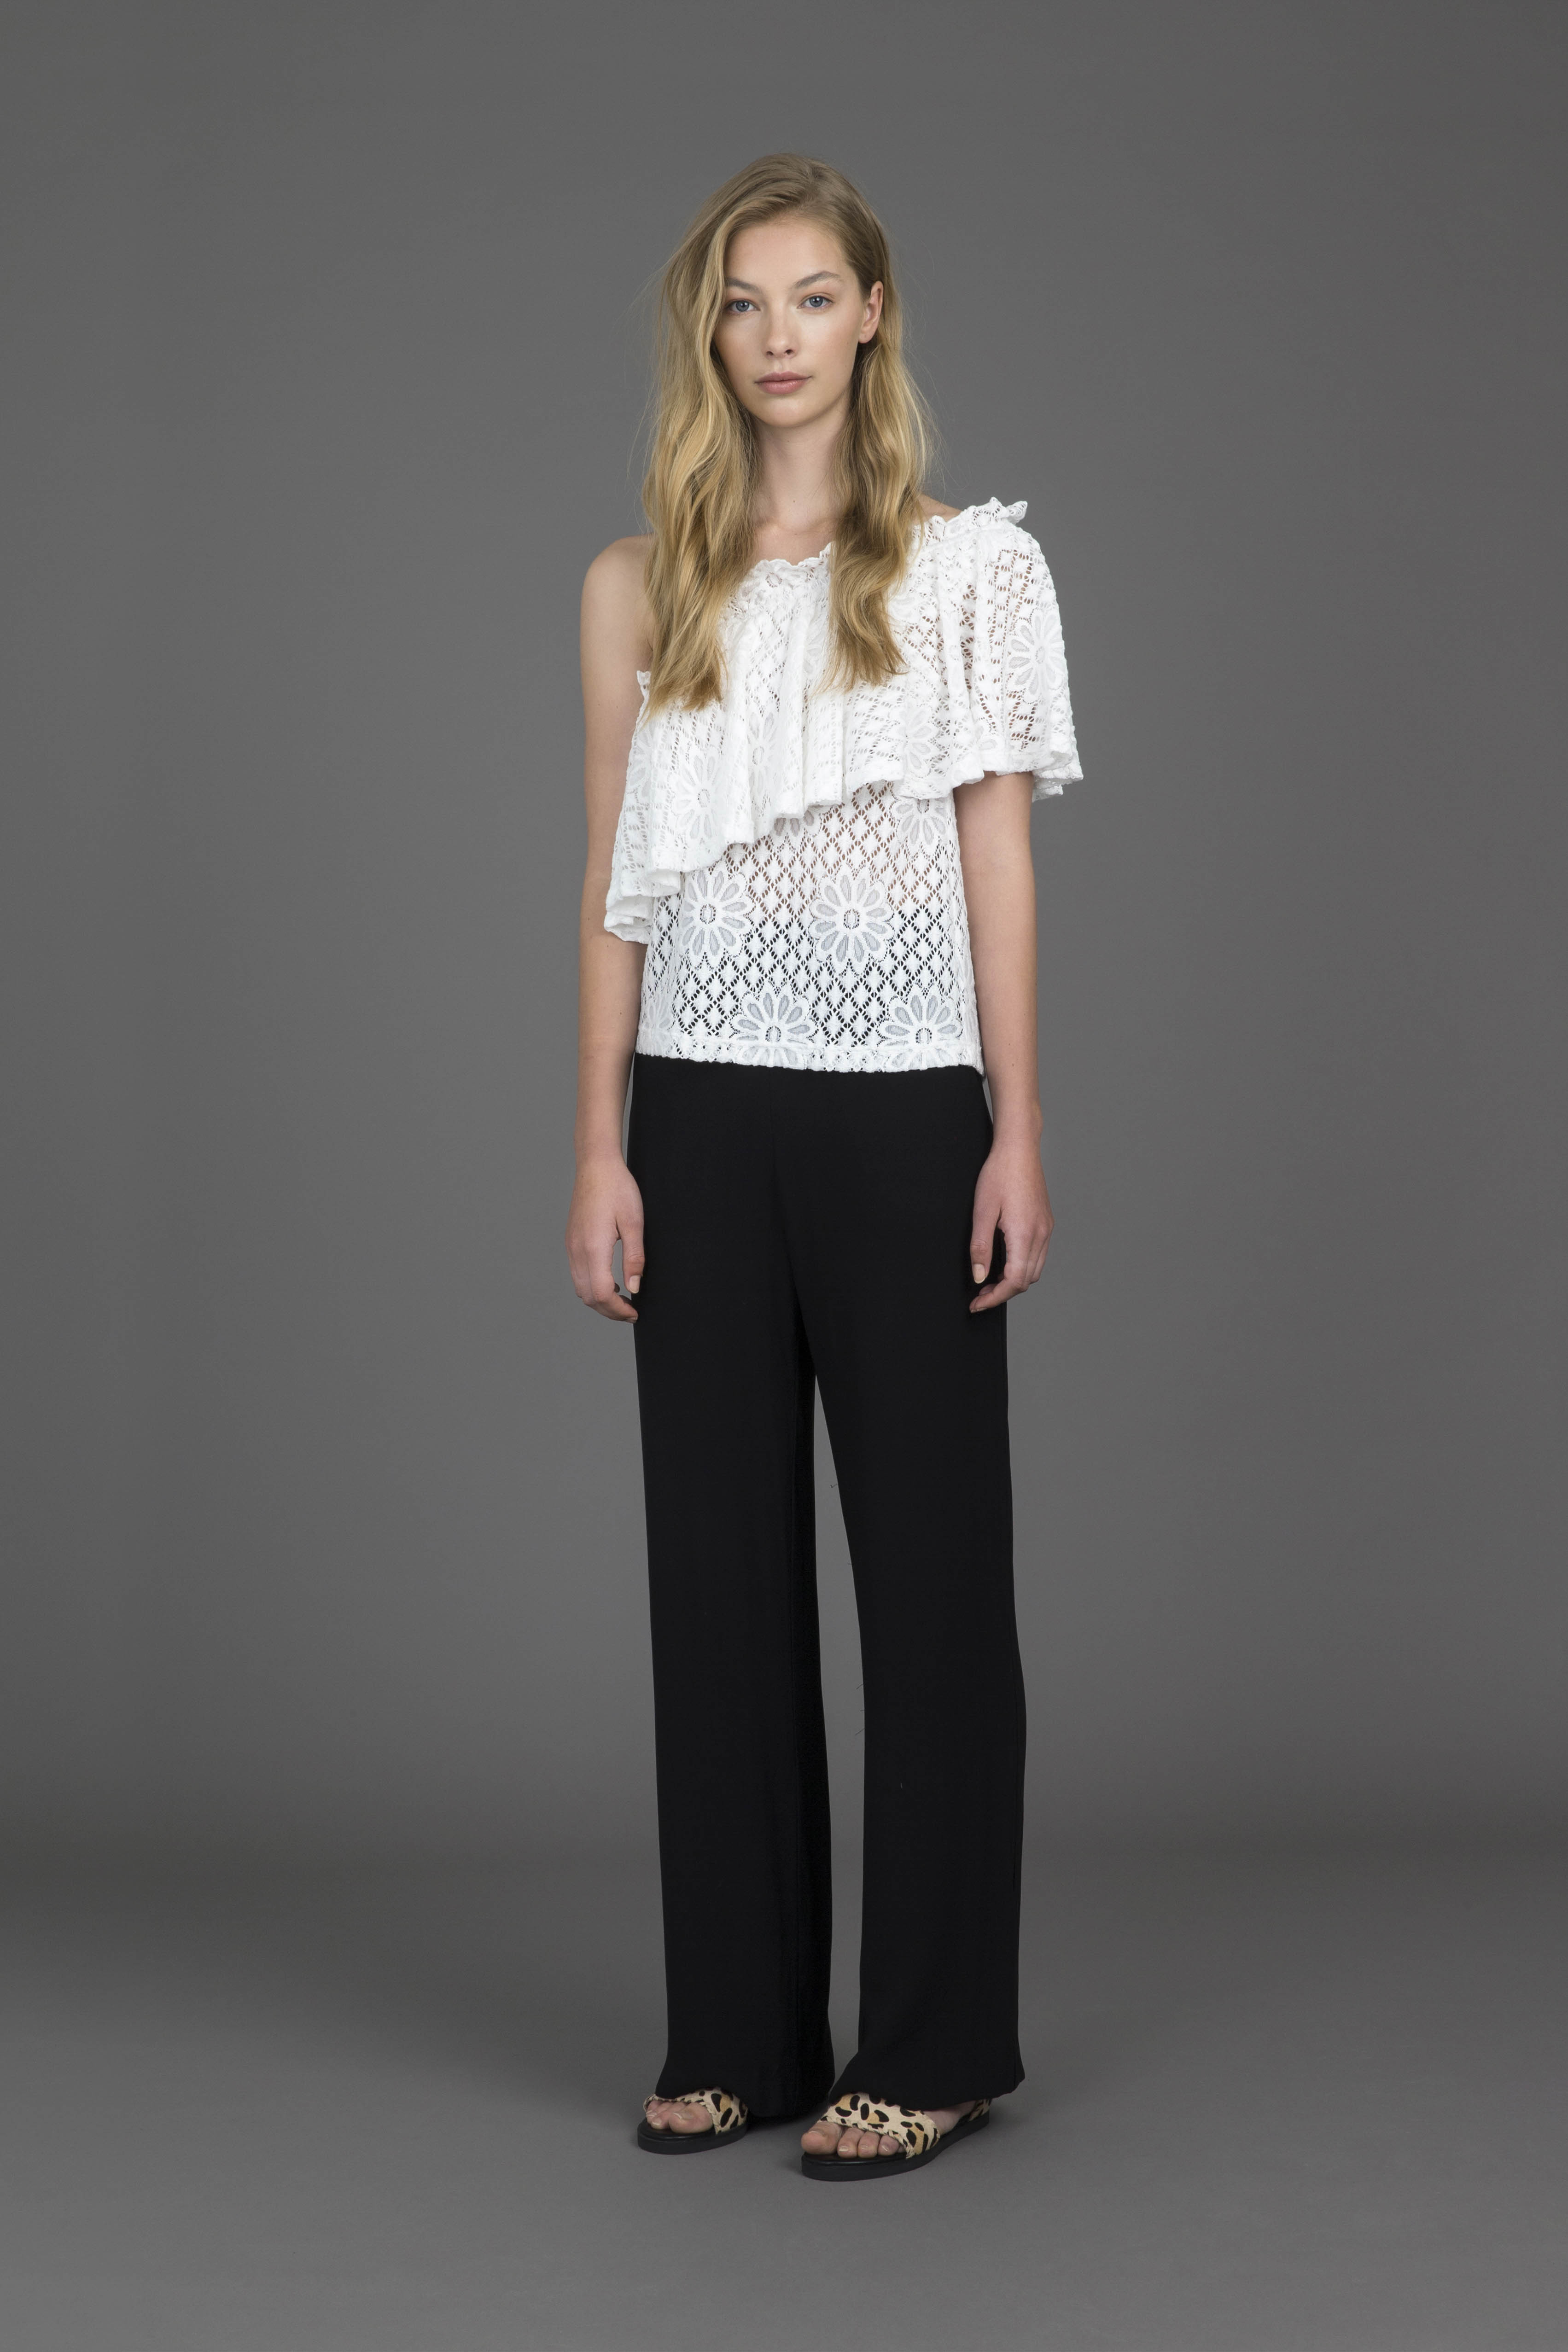 ruby-ziela-lace-top-firebird-pant